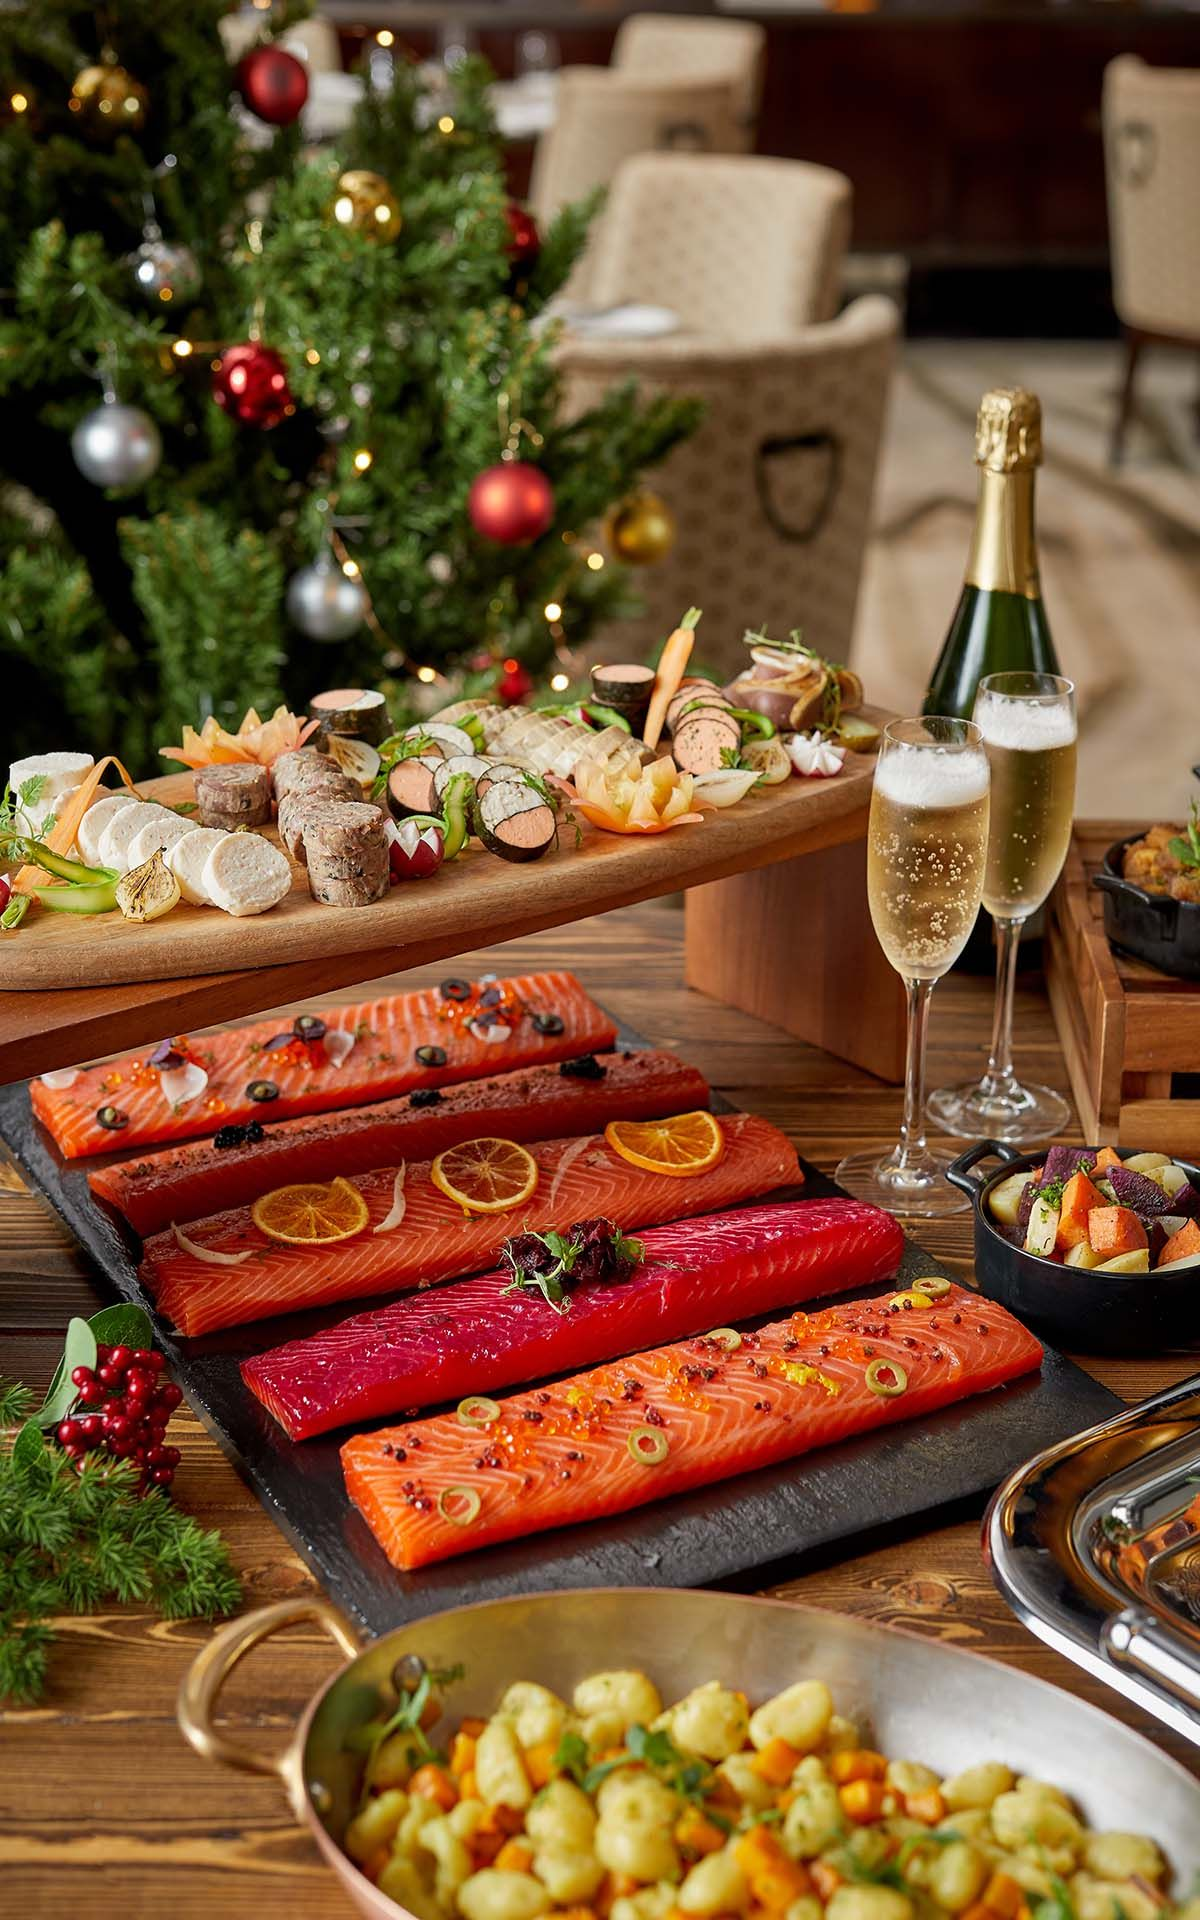 Mandarin Oriental Christmas Buffet 2020 The Ultimate Guide To New Year's Eve Dinner & Where To Count Down